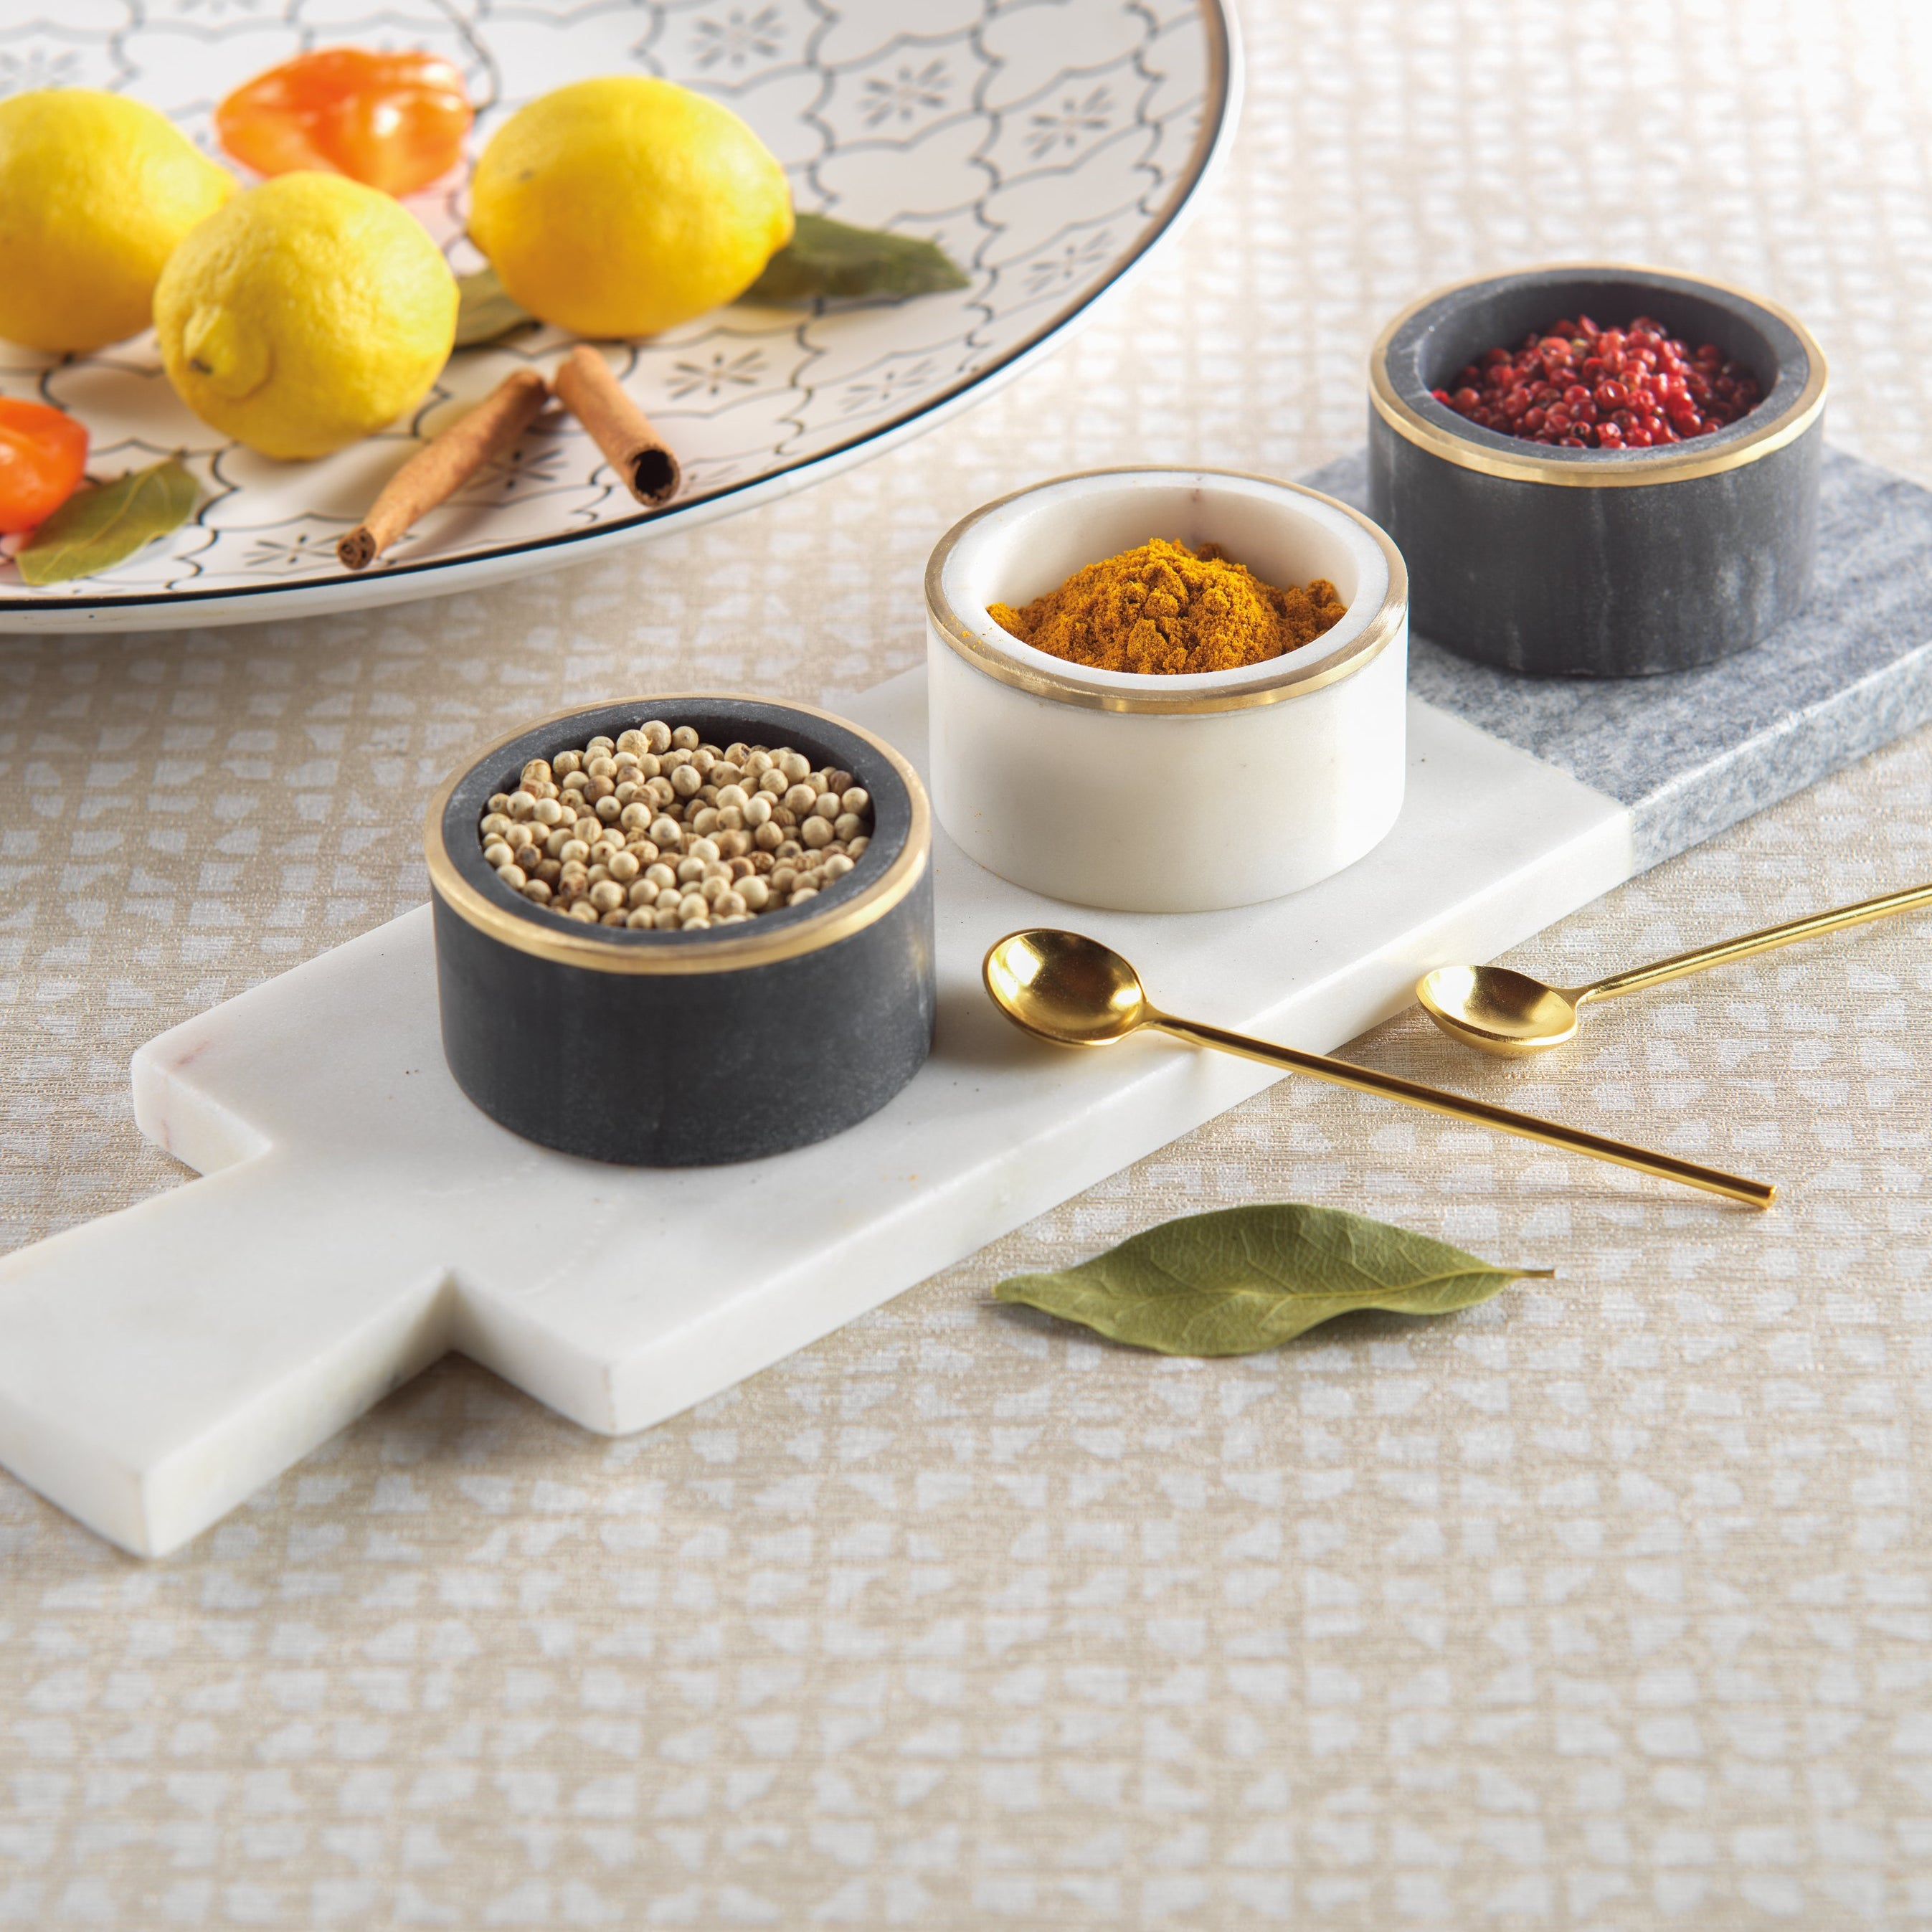 Makrana Two-Tone Condiment Set